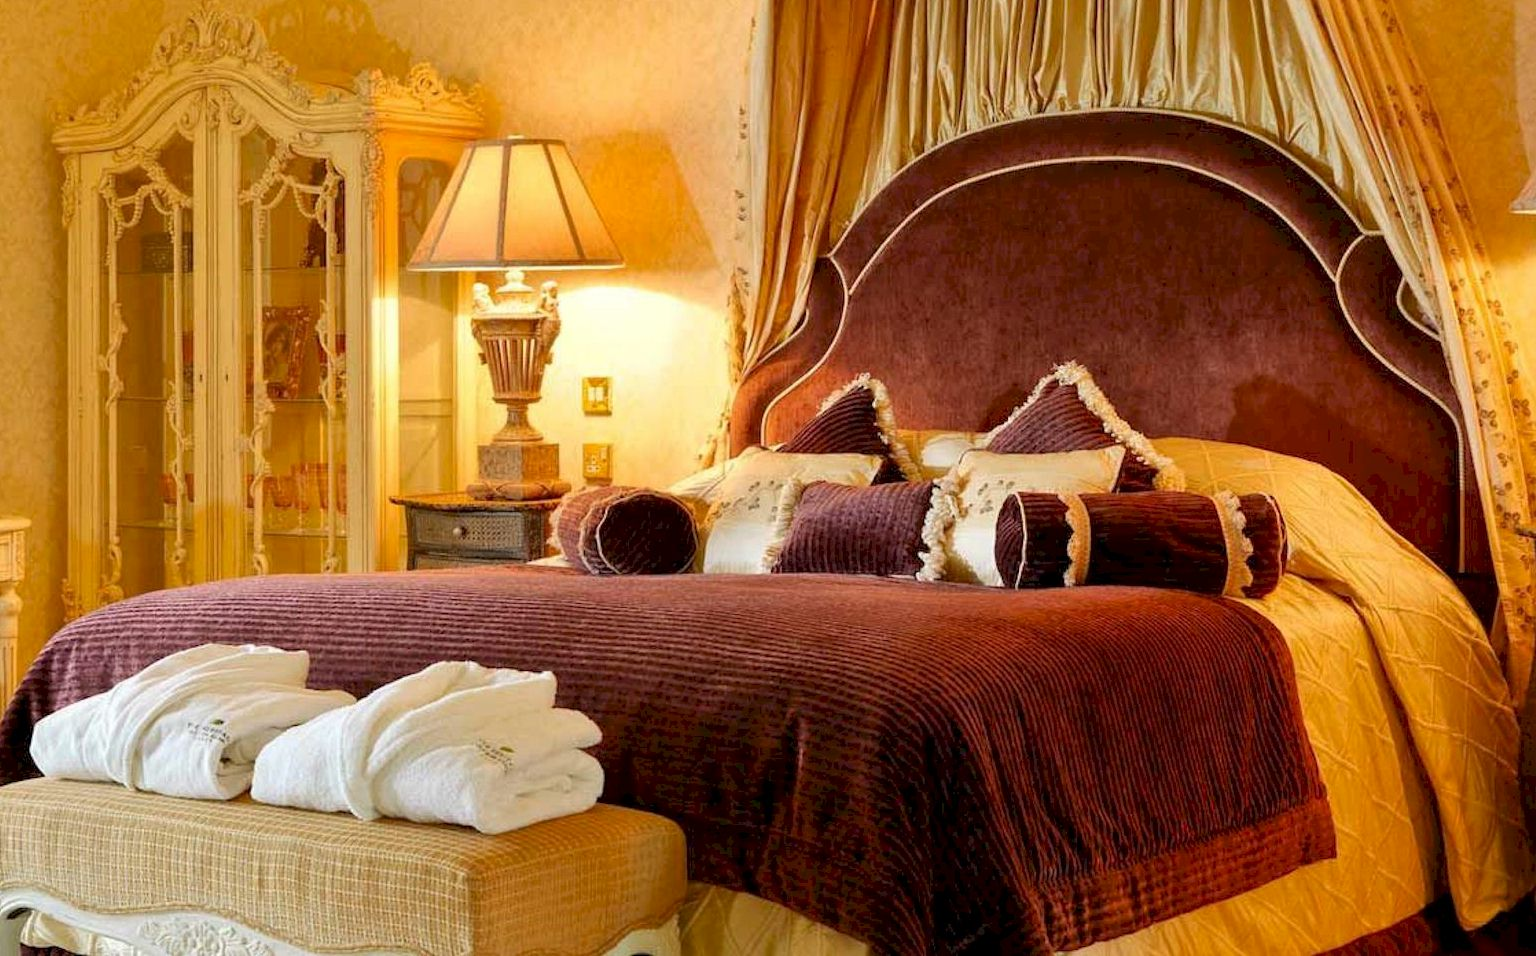 The 5* Heritage Resort, Killenard